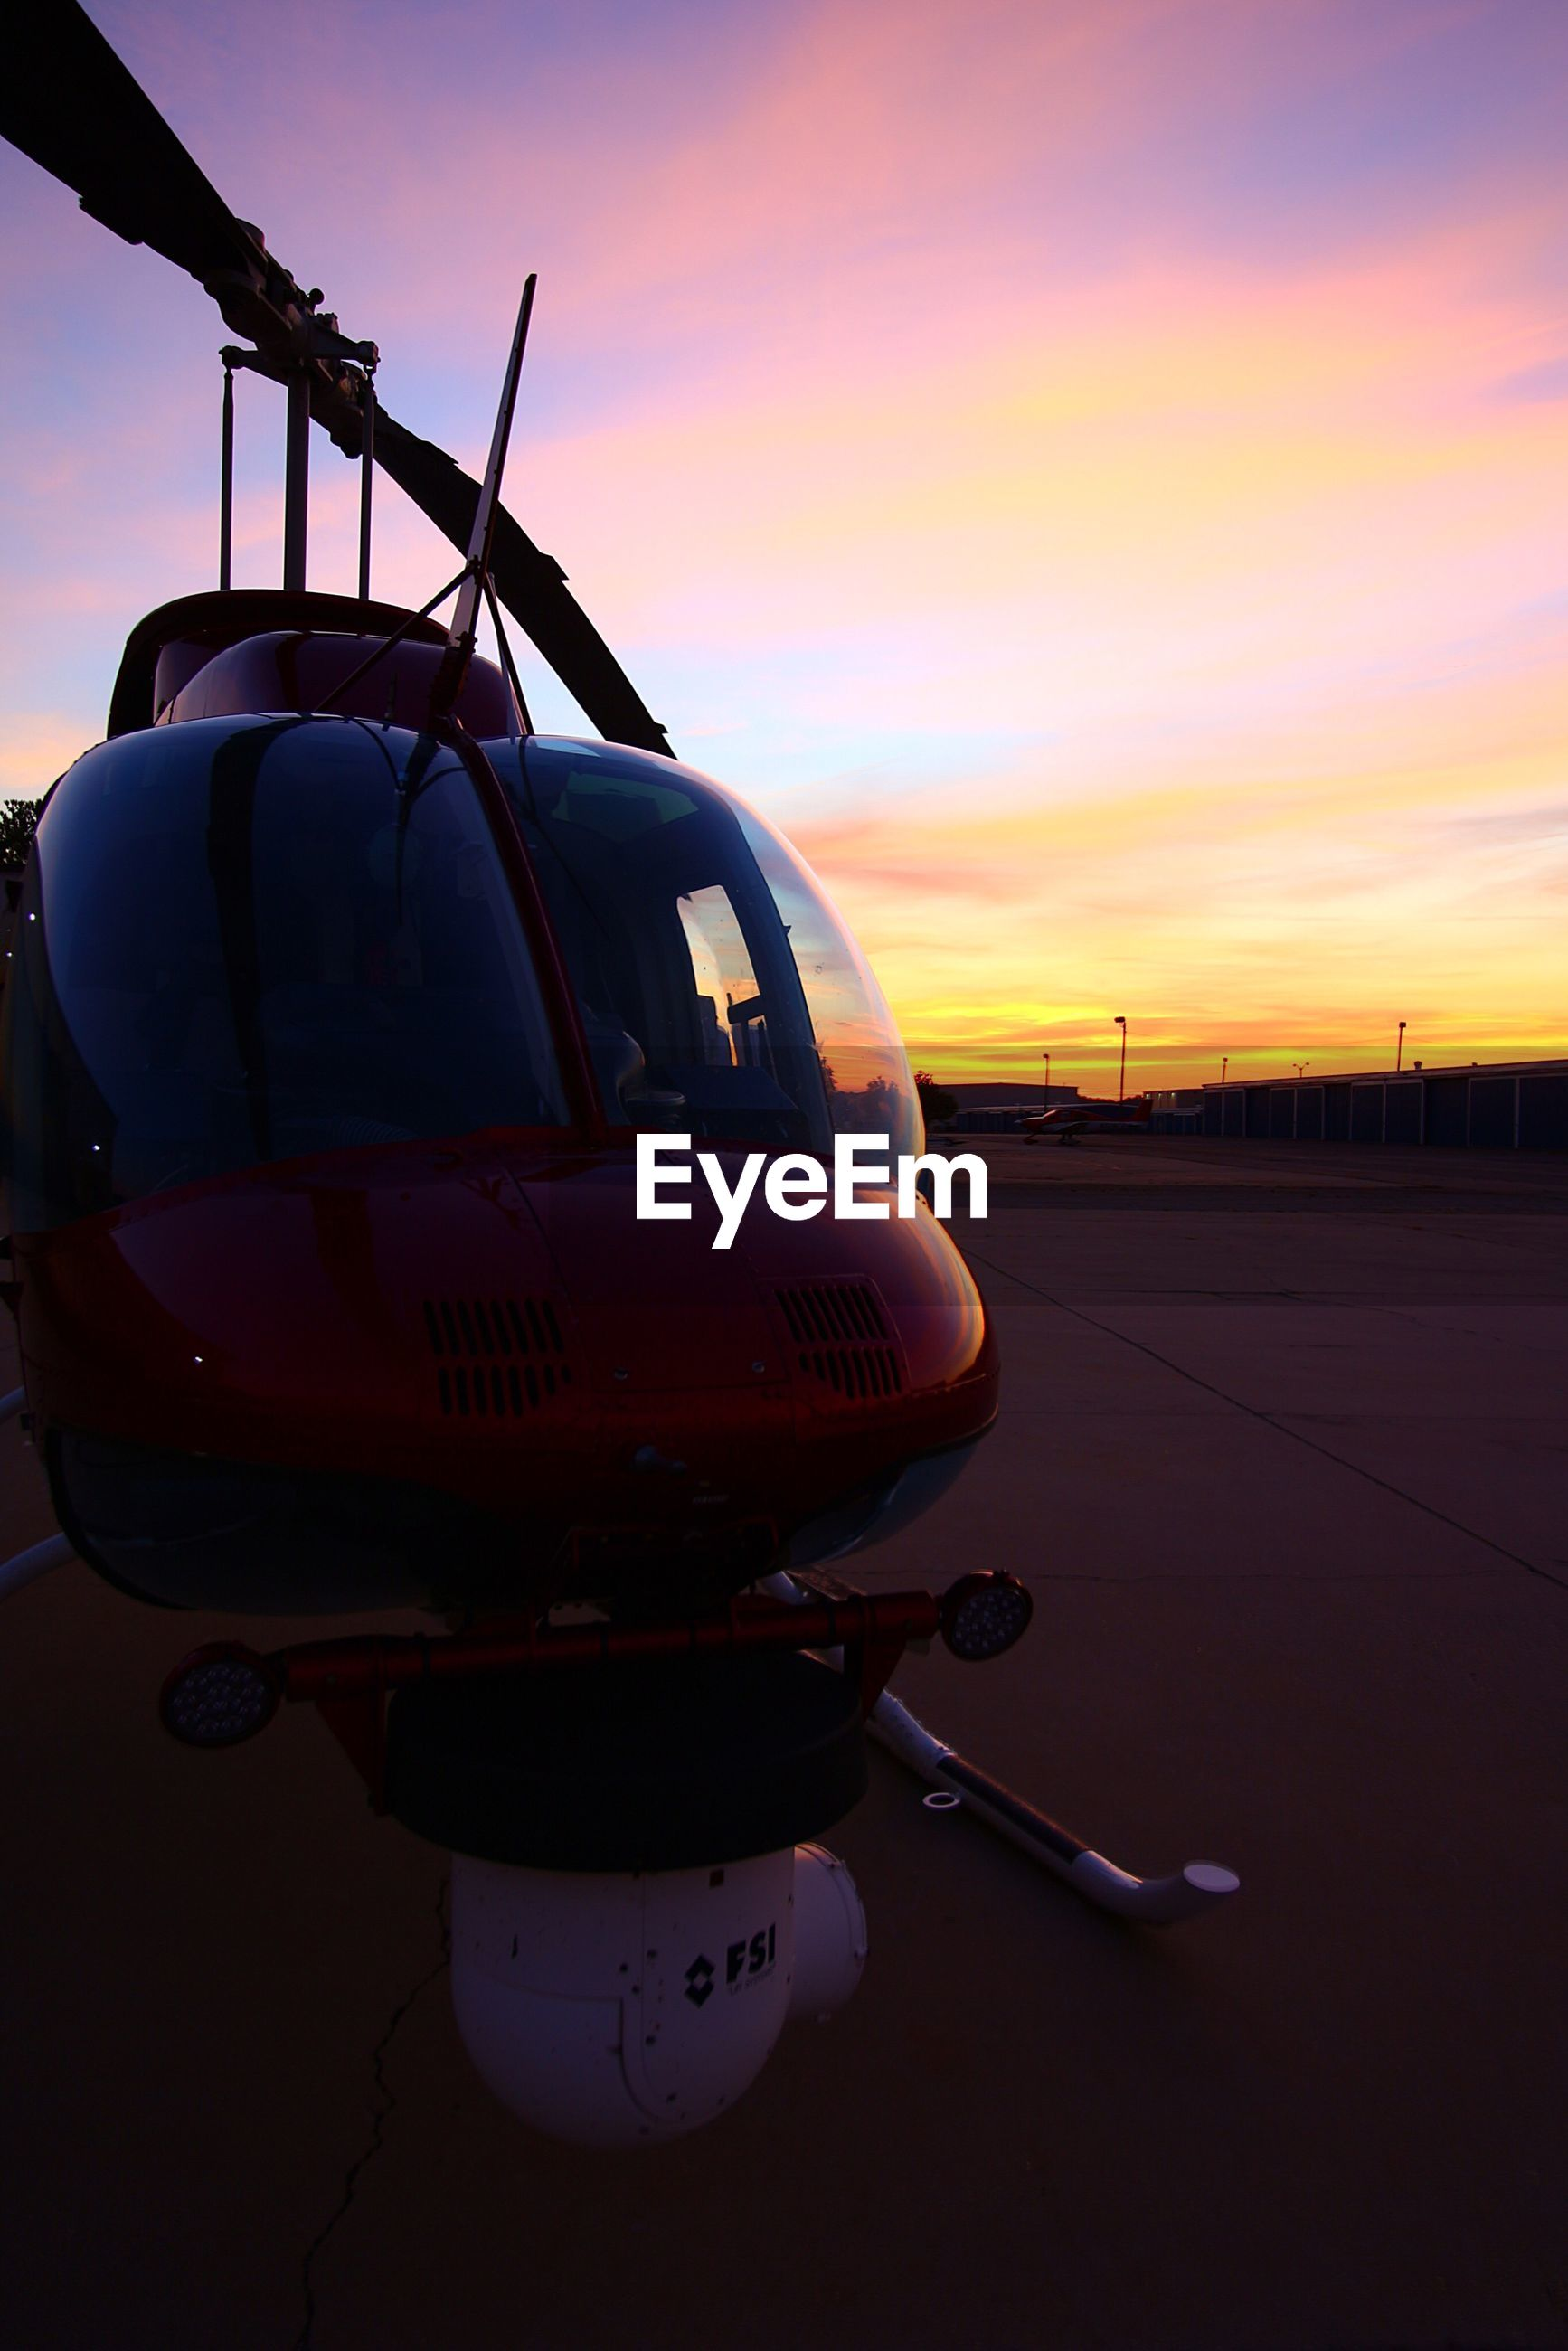 sunset, transportation, airplane, mode of transport, air vehicle, sky, no people, travel, journey, outdoors, airport runway, airport, runway, beauty in nature, nature, close-up, day